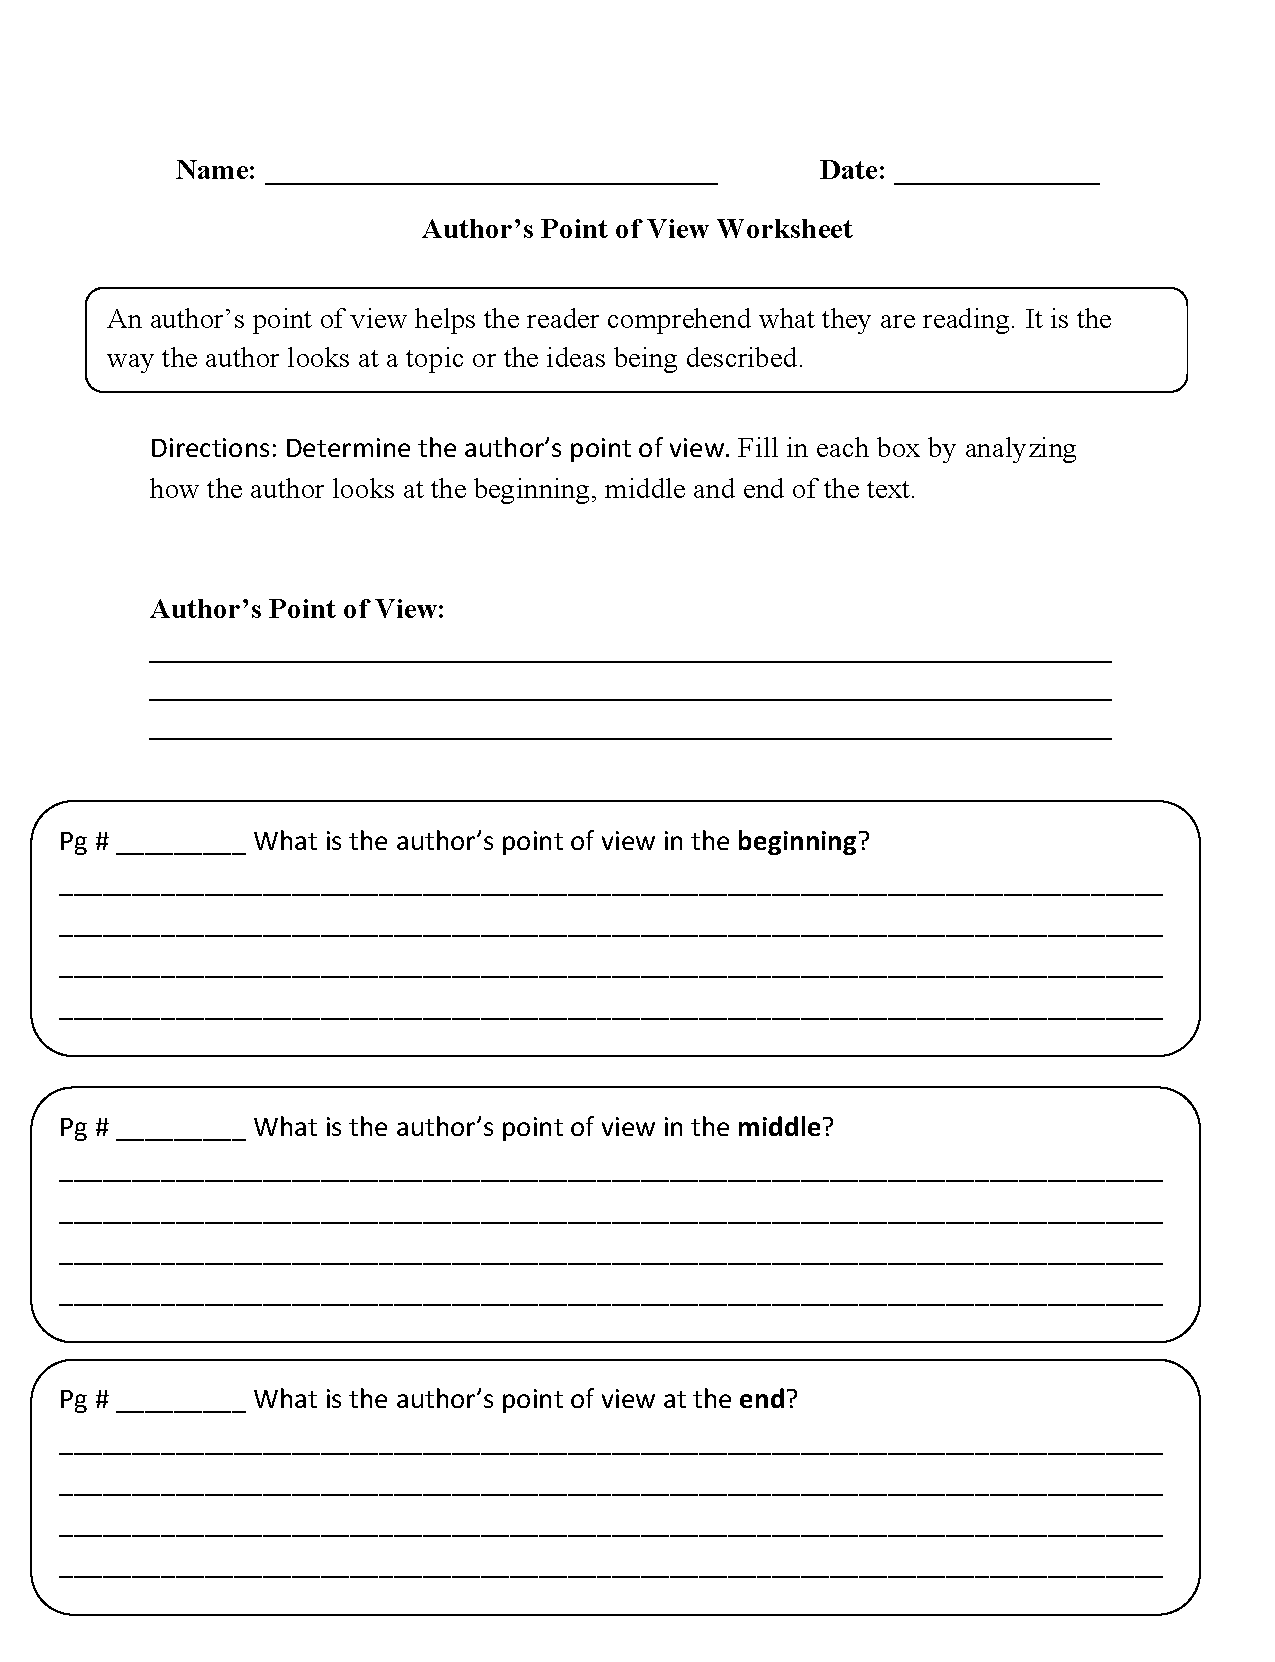 Proatmealus  Outstanding Englishlinxcom  Point Of View Worksheets With Engaging Point Of View Worksheets With Nice Division Fraction Word Problems Worksheets Also Able And Ible Worksheets In Addition Possessive Nouns Worksheets For Nd Grade And Identifying Main Ideas And Supporting Details Worksheets As Well As Adding Fraction With Different Denominators Worksheets Additionally Vcv Pattern Worksheets From Englishlinxcom With Proatmealus  Engaging Englishlinxcom  Point Of View Worksheets With Nice Point Of View Worksheets And Outstanding Division Fraction Word Problems Worksheets Also Able And Ible Worksheets In Addition Possessive Nouns Worksheets For Nd Grade From Englishlinxcom